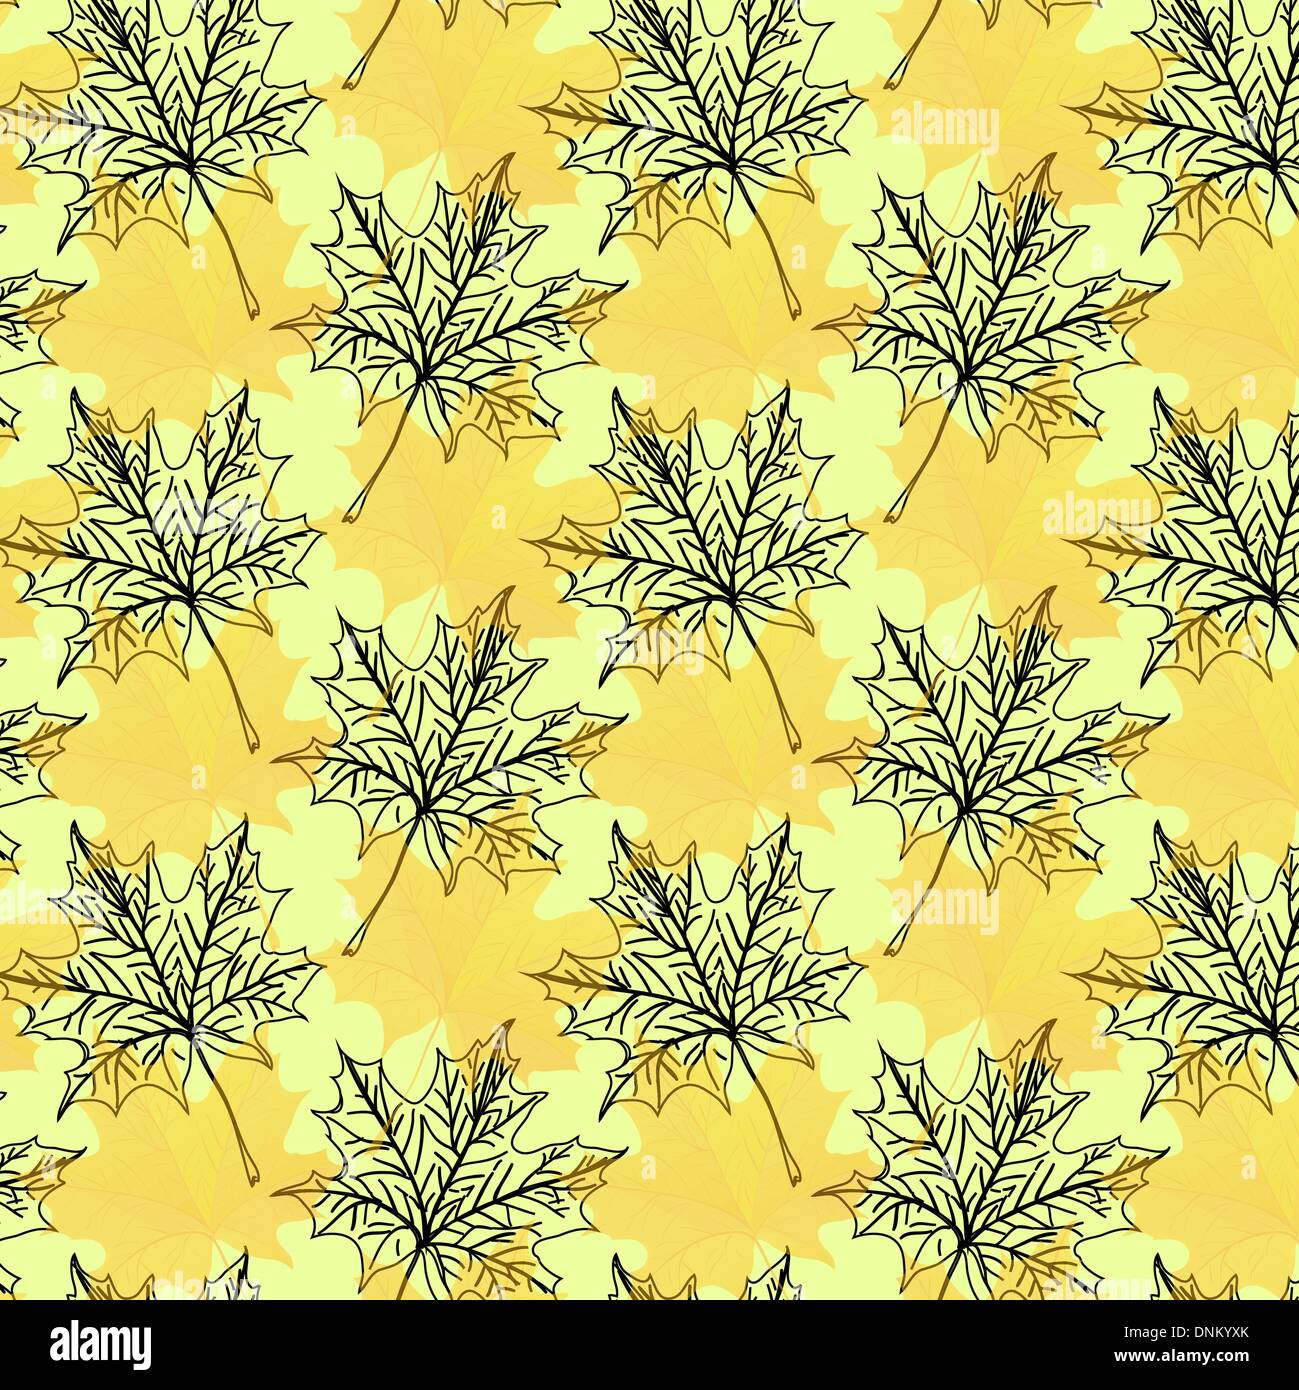 Seamless wallpaper pattern from abstract smooth forms, vector - Stock Image